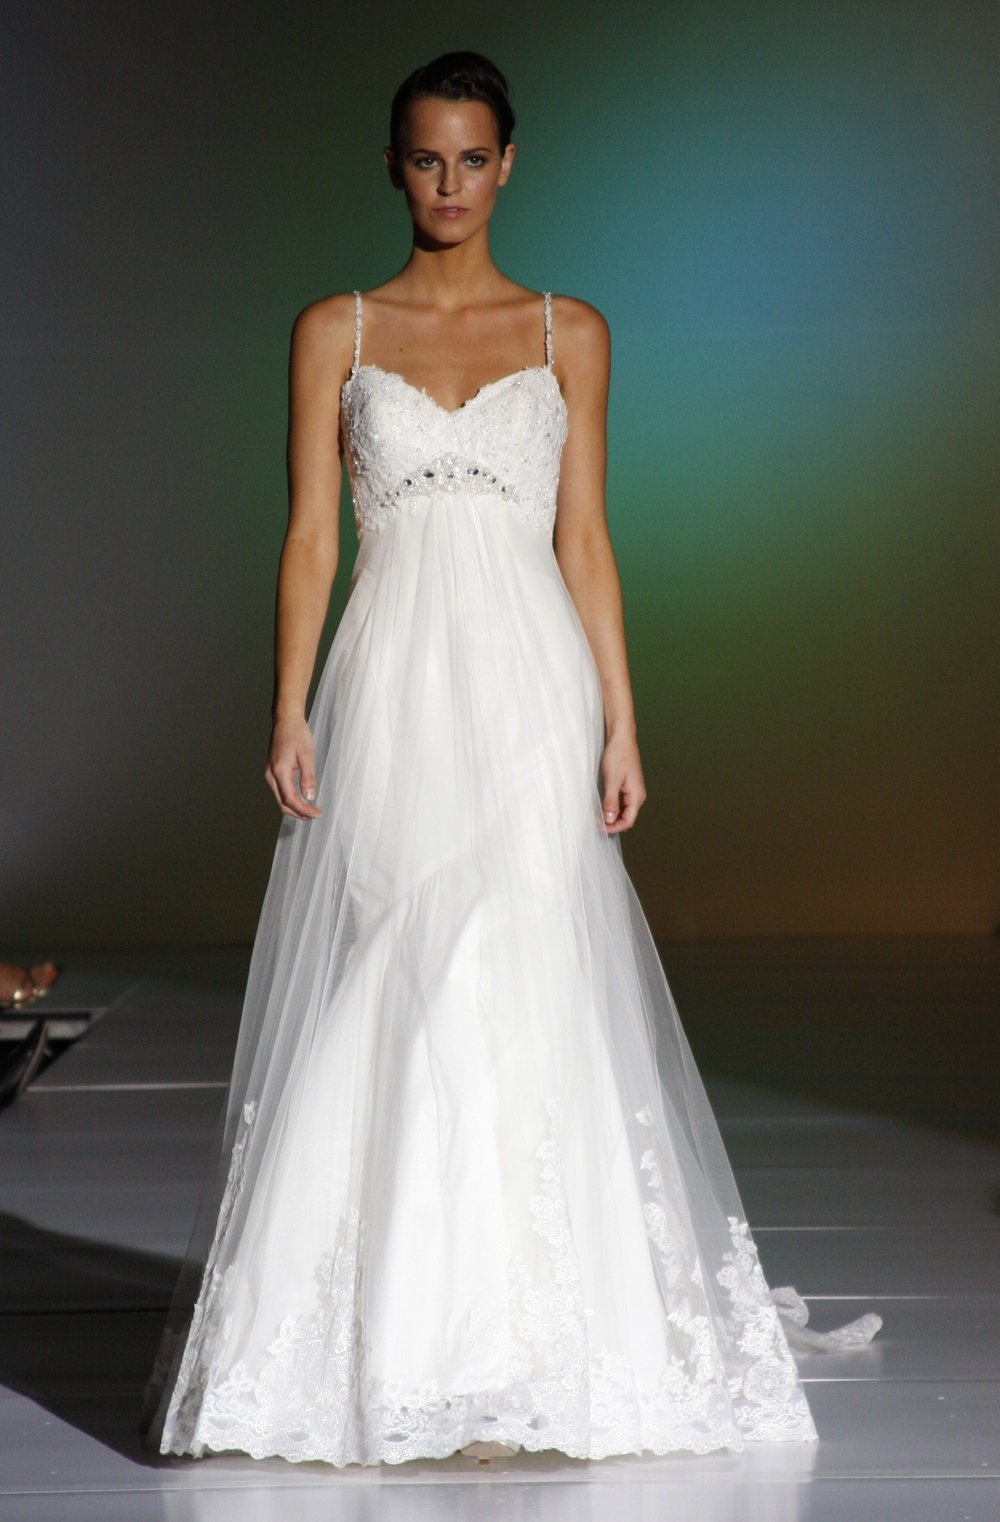 Blue-by-enzoani-spring-2011-wedding-dresses-dessie-lace-a-line-tulle-floral-applique.full